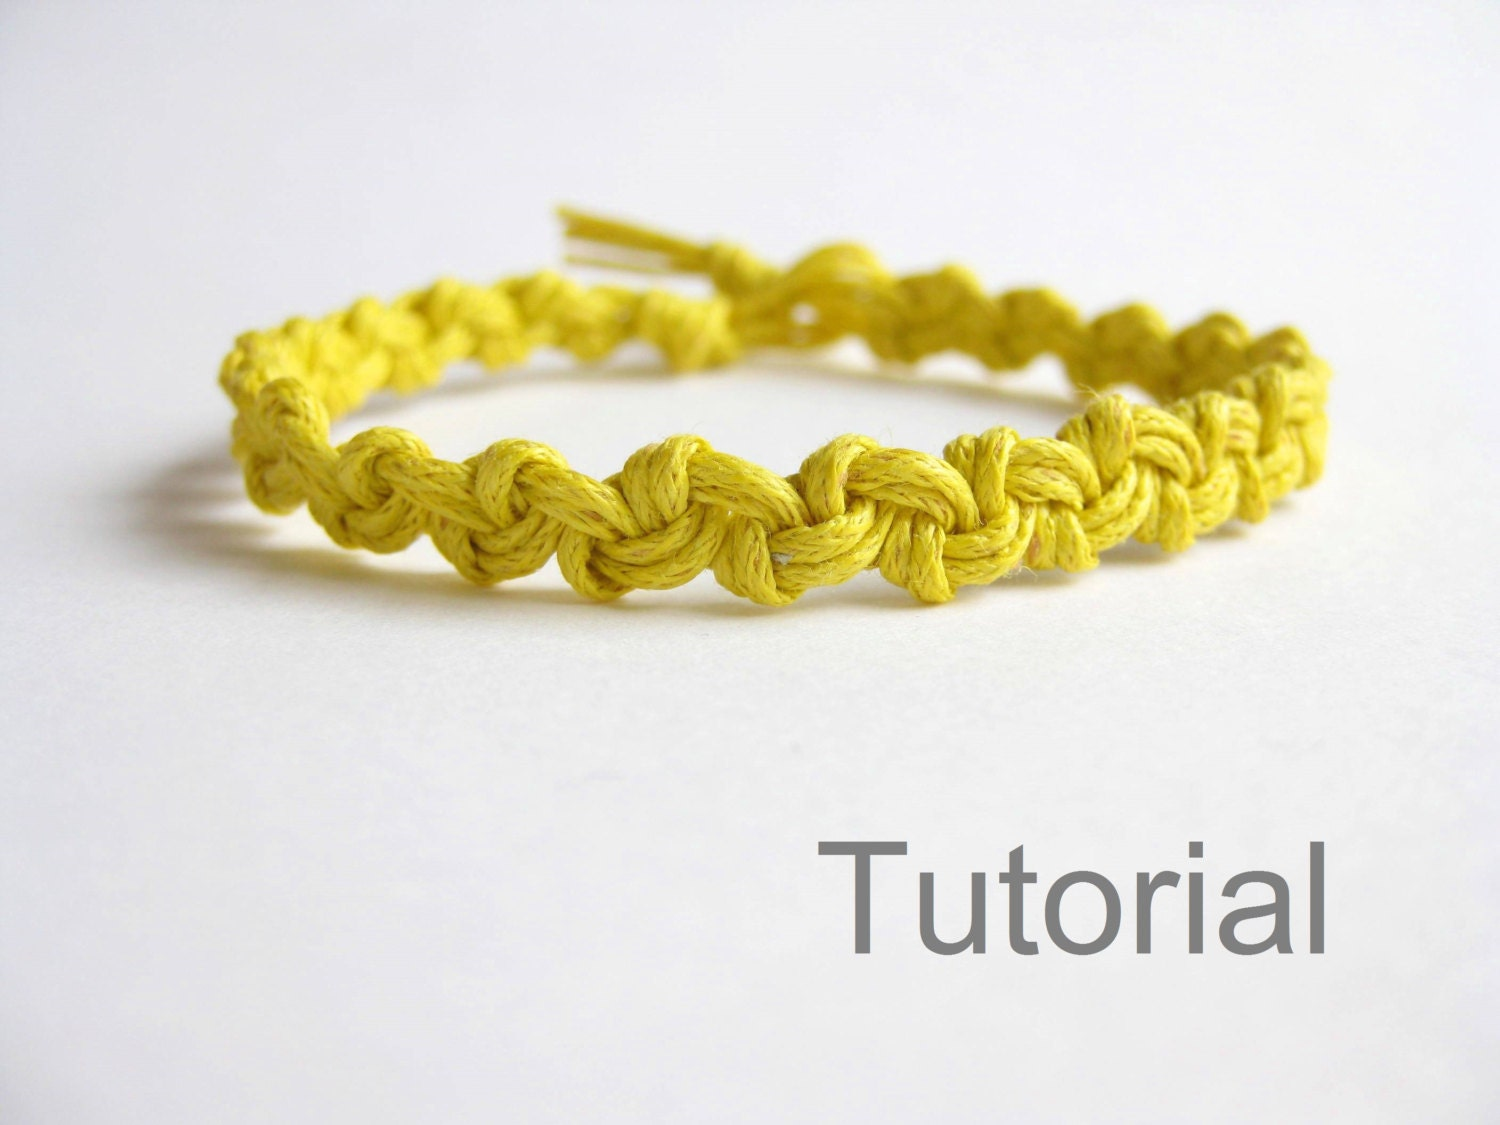 Macrame bracelet pattern tutorial pdf easy yellow how to by ...